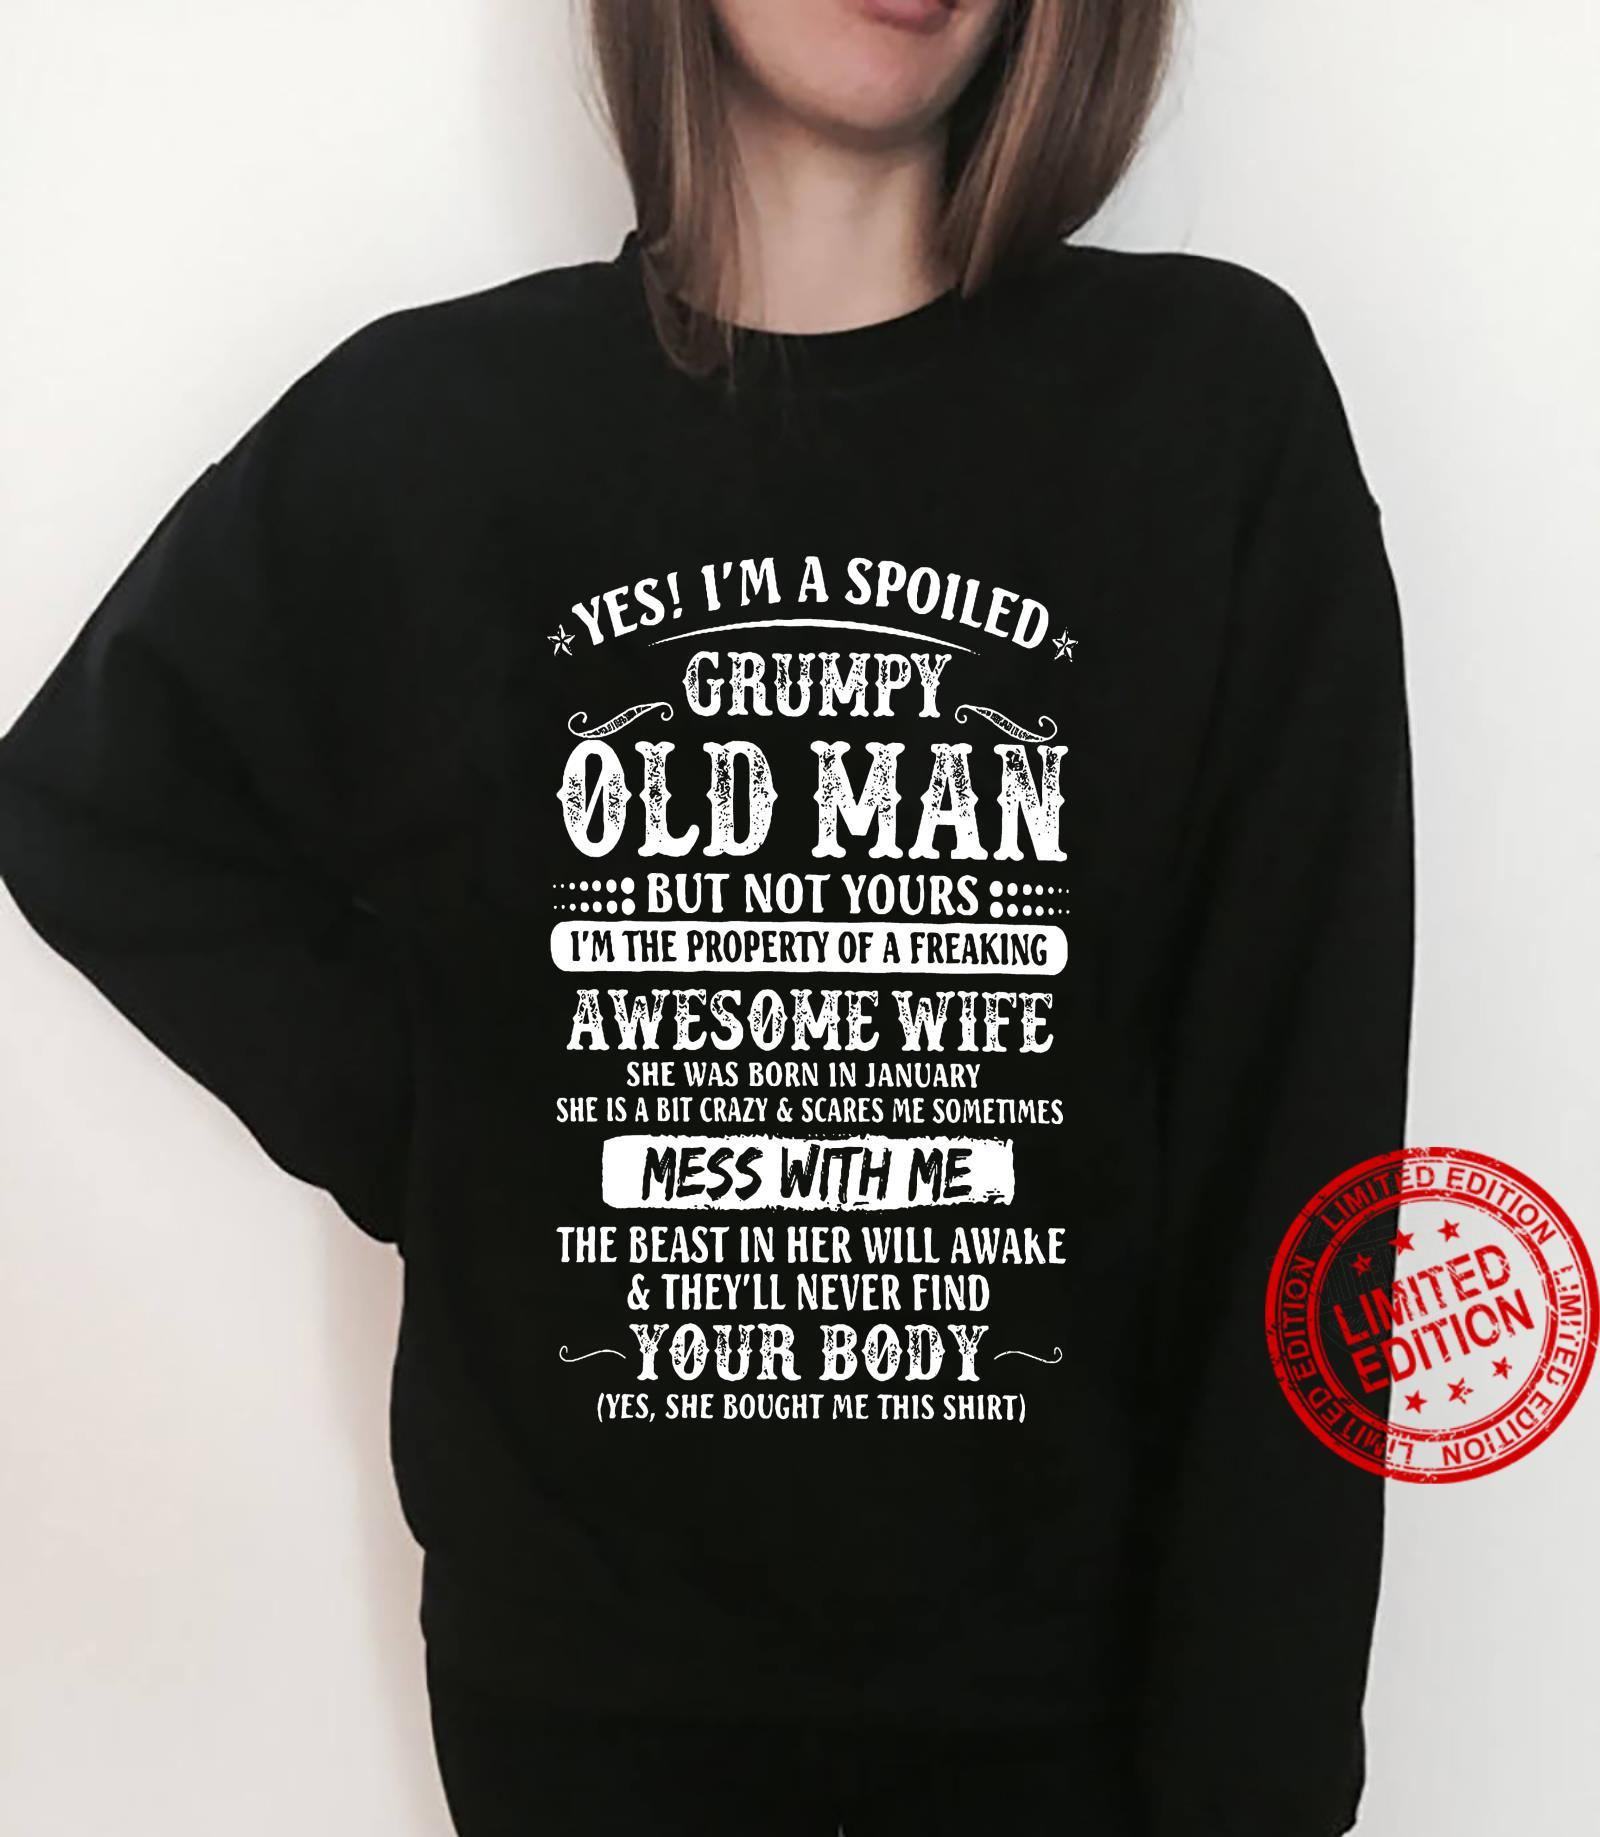 Yes I'm A Spoiled Grumpy Old Man But Not Yours Awesome Wife She Was Born In January The Beast In Her Will Awake Your Body Shirt sweater